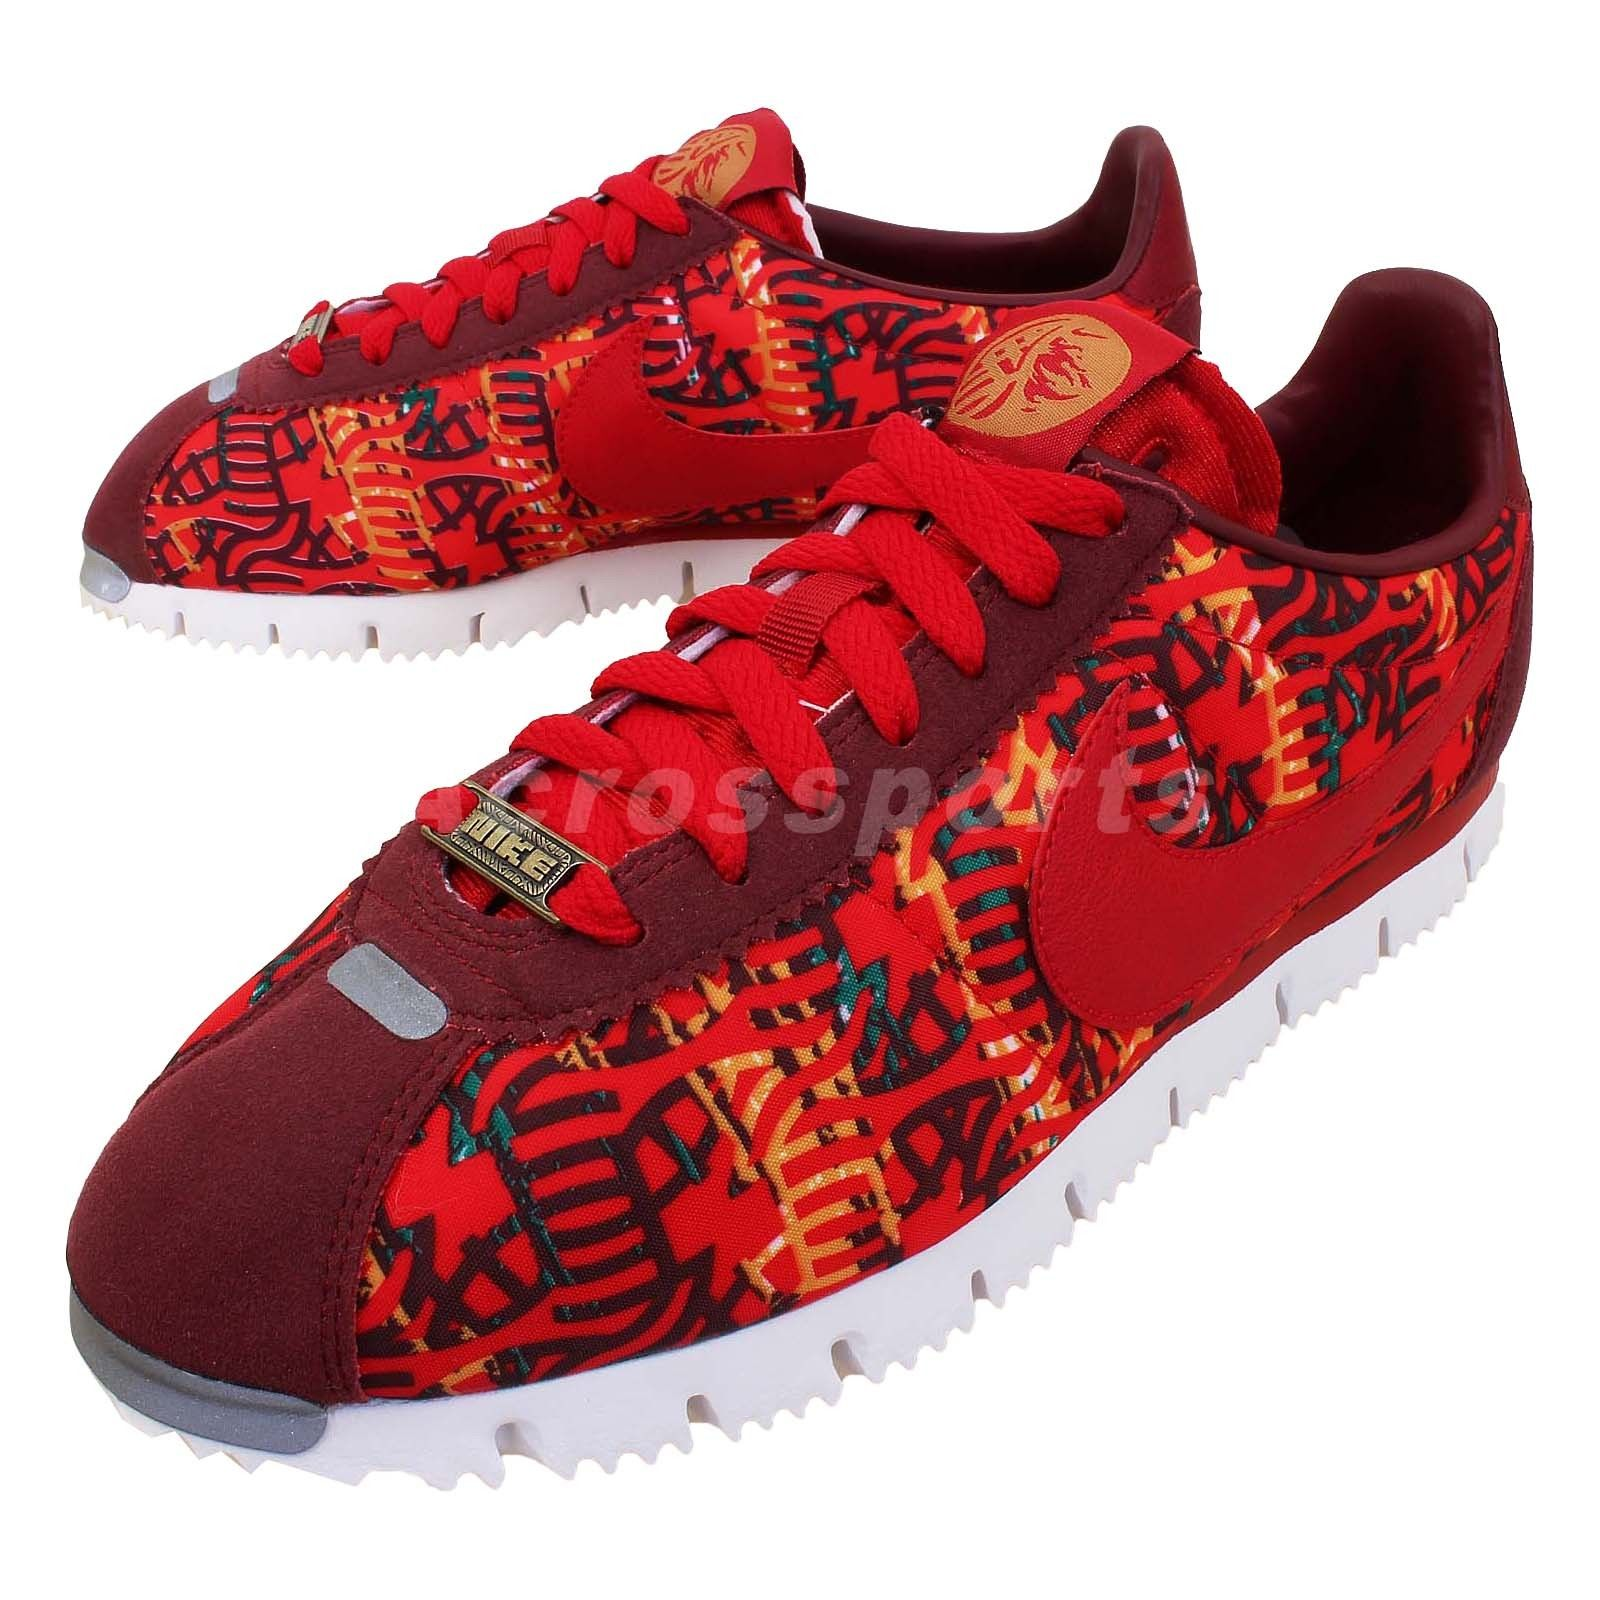 nike-cortez-nm-prm-qs-year-of-the-horse-2